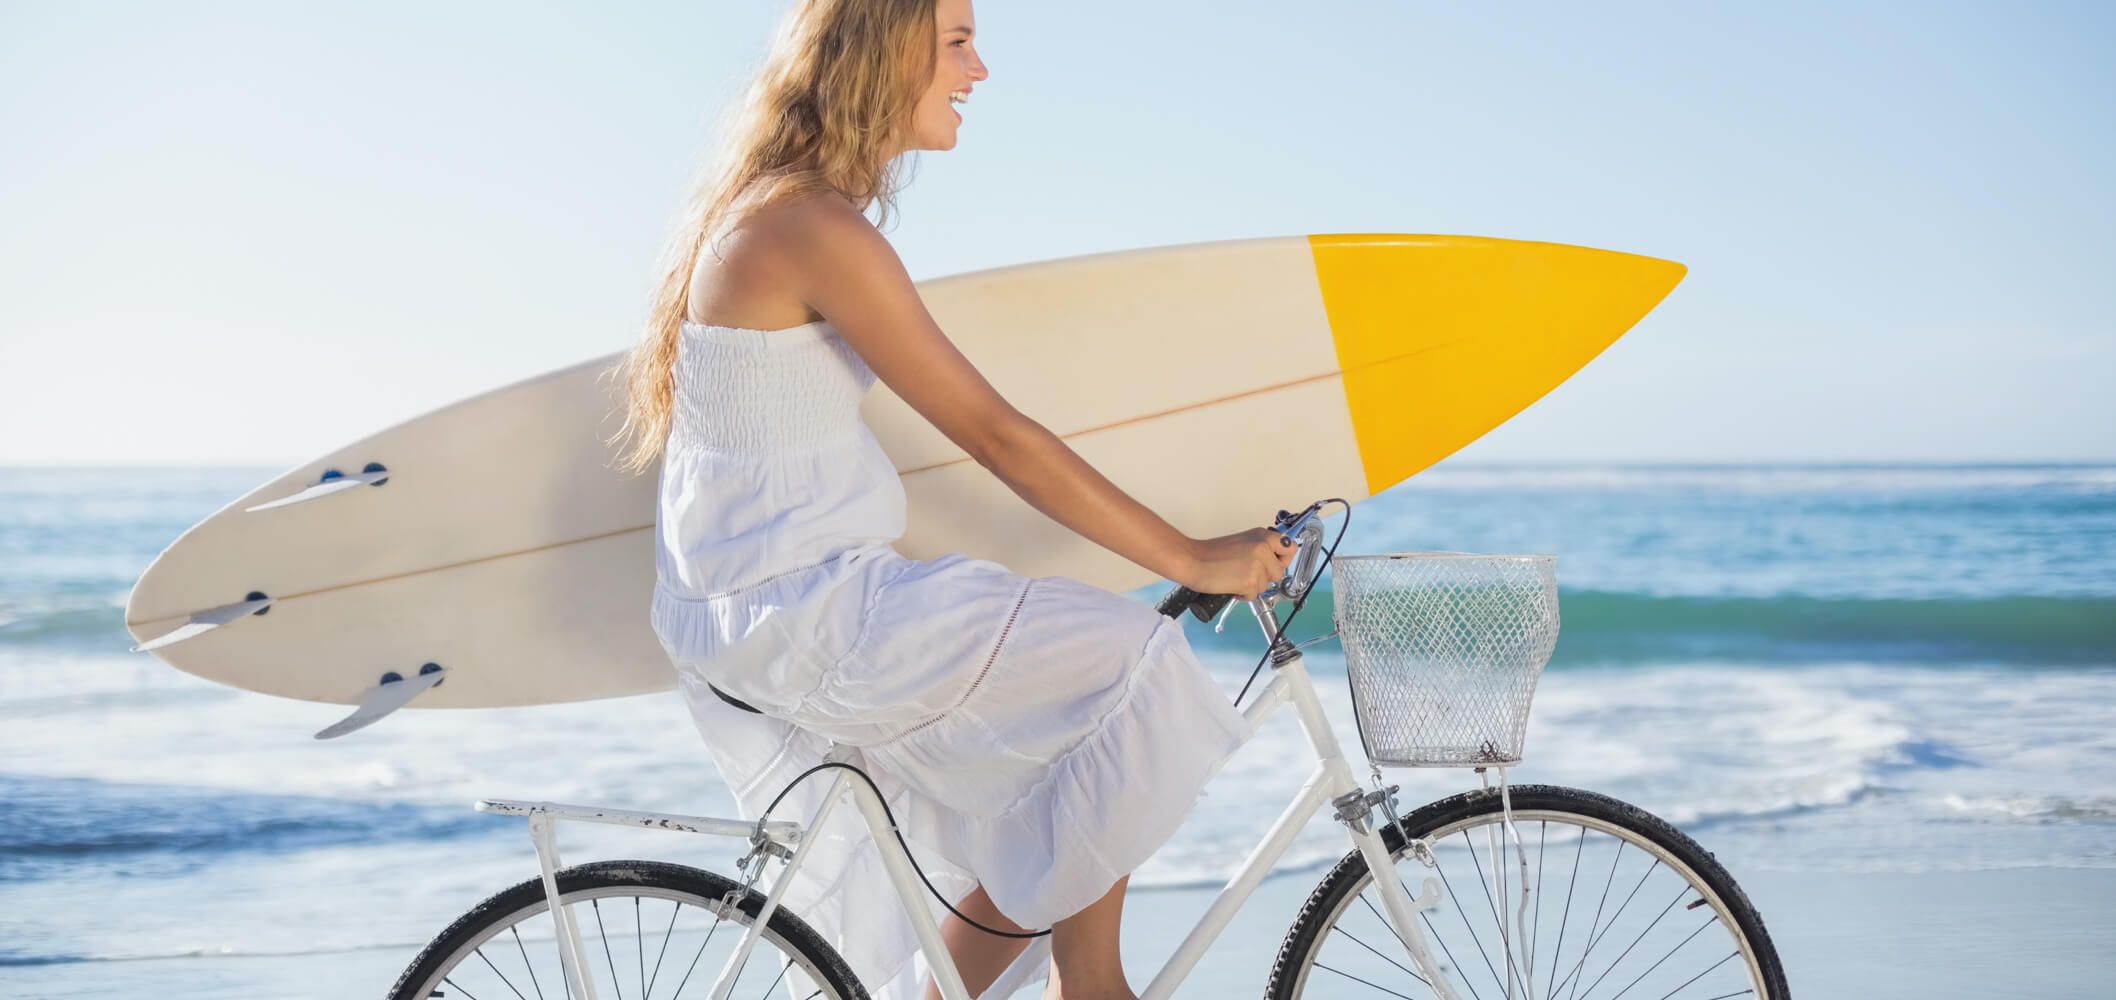 a carefree woman on a bike in front of the ocean, with a surf board under her arm